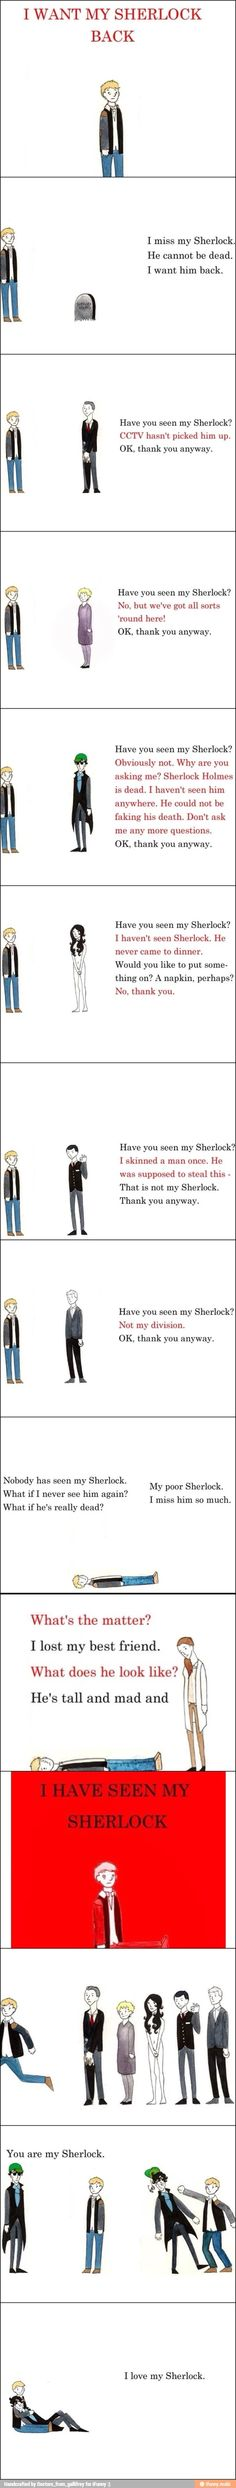 Have you seen my Sherlock?